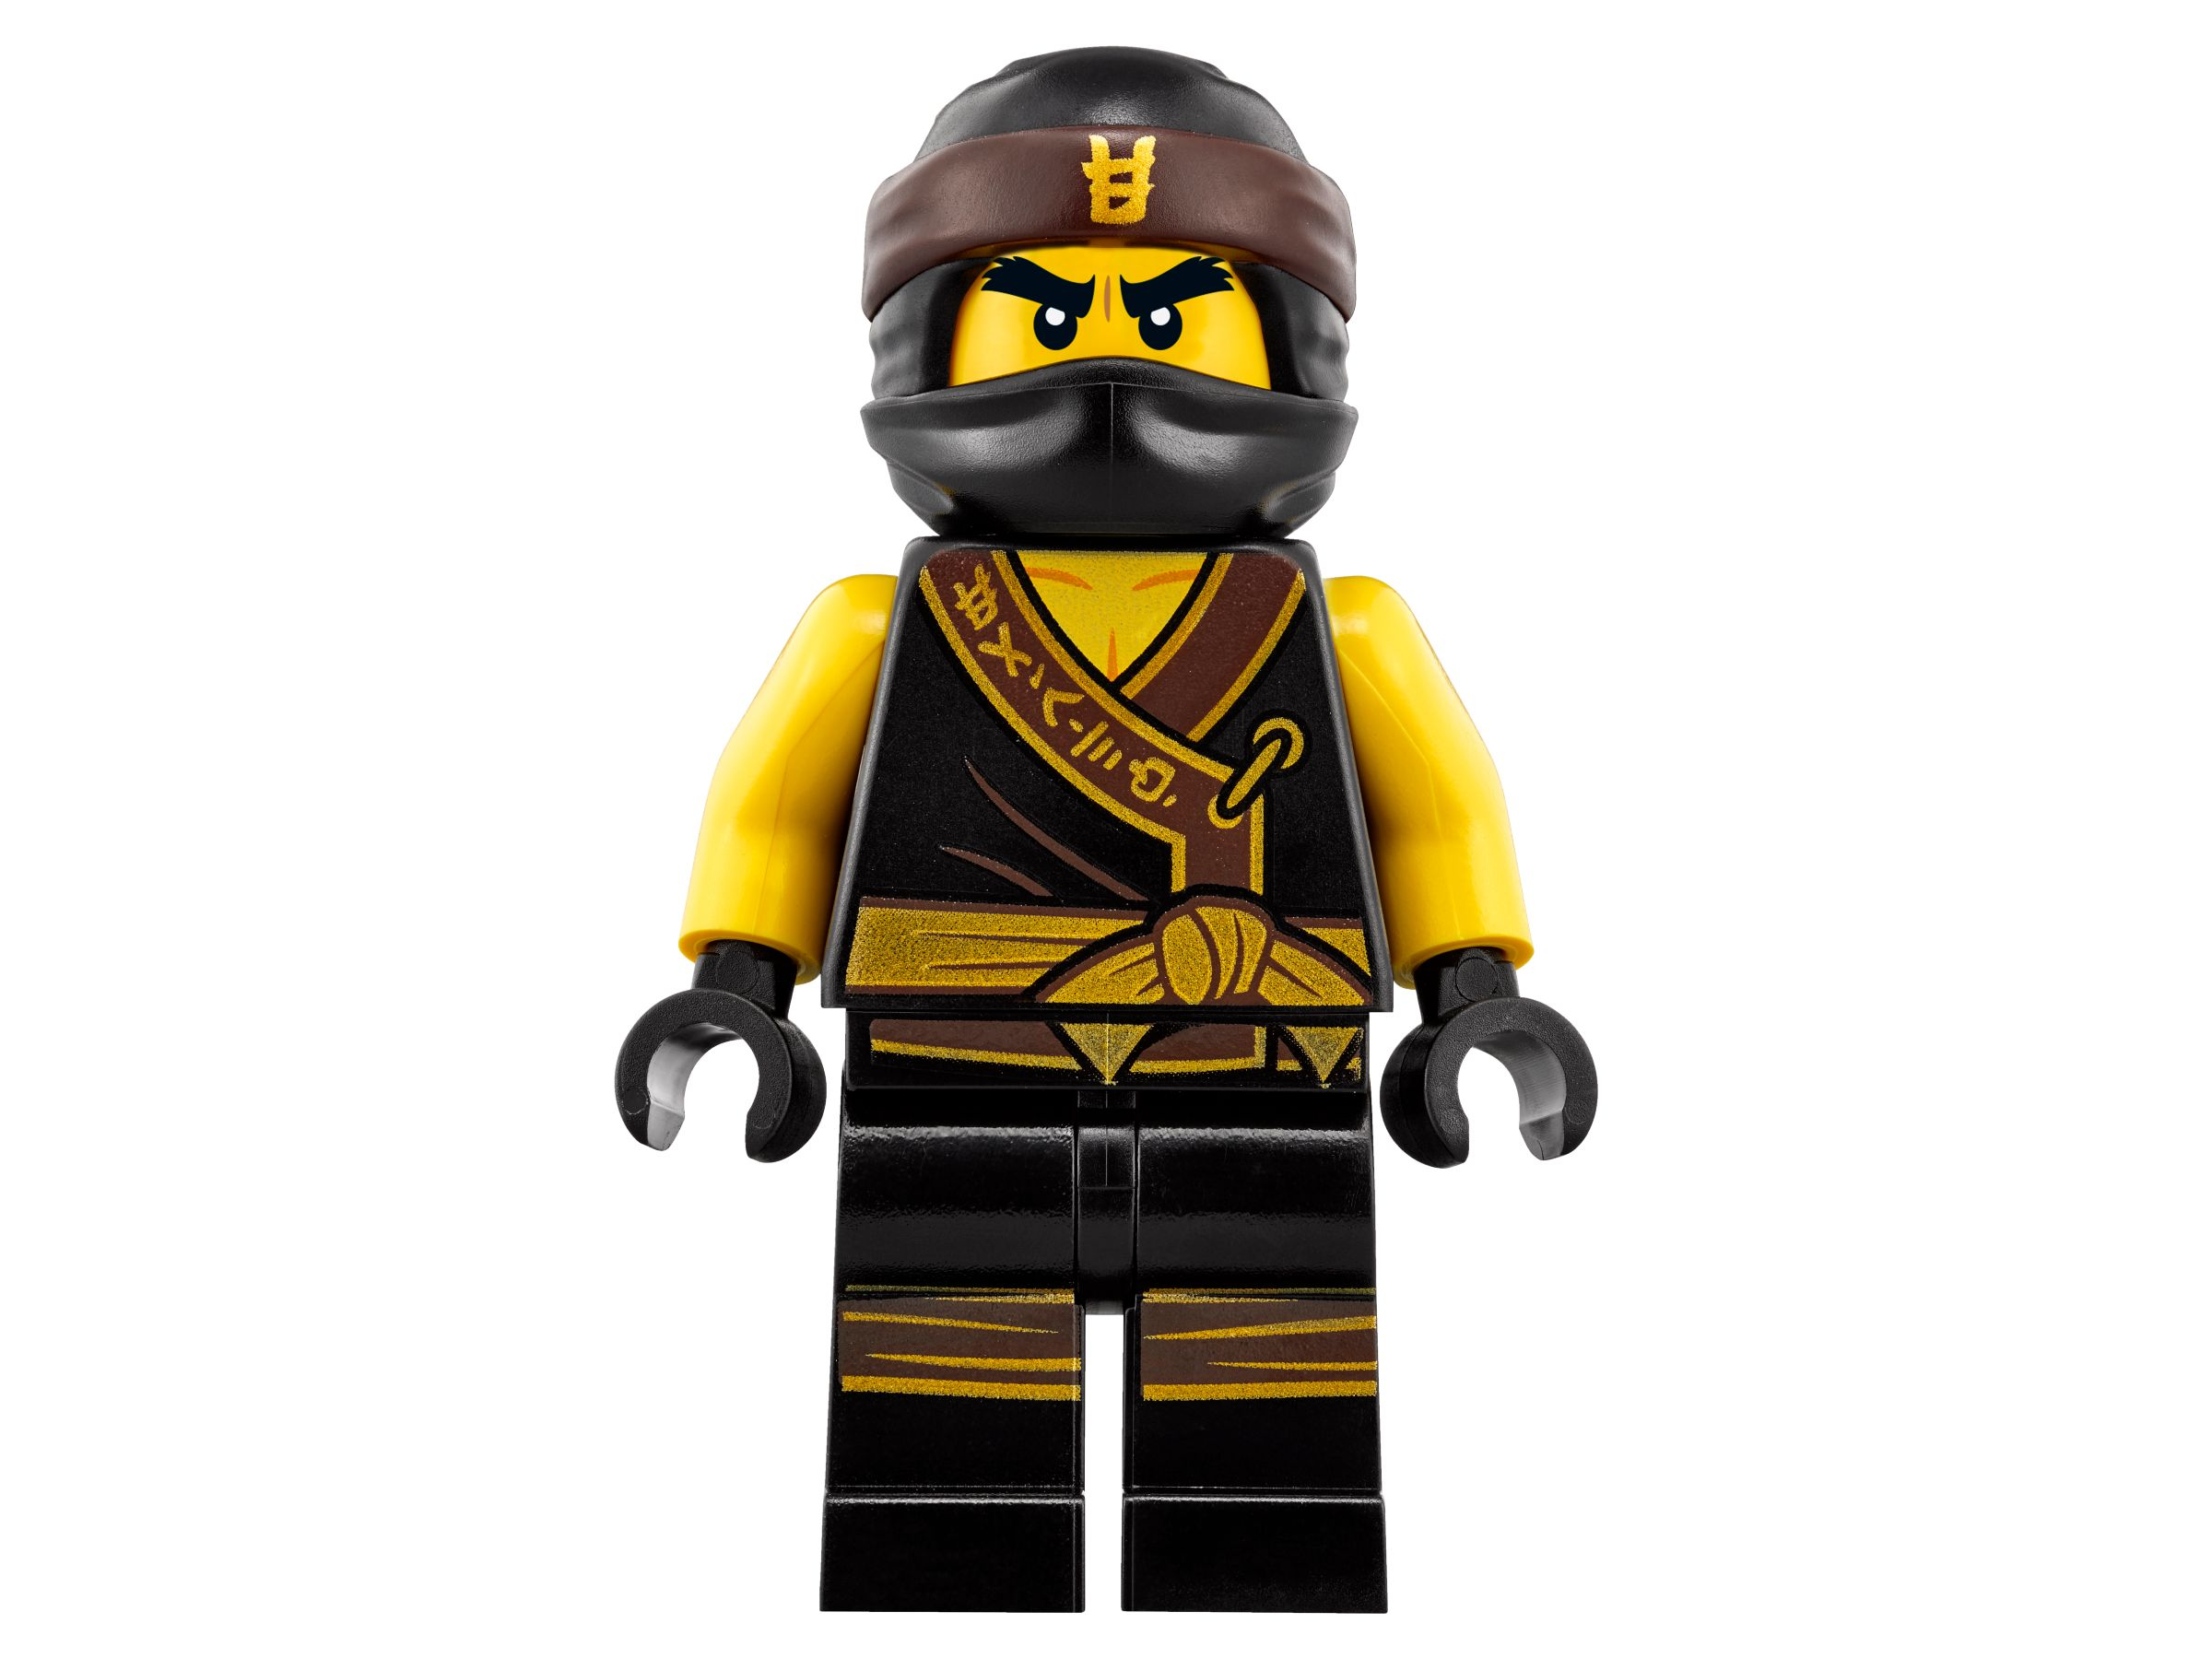 LEGO The LEGO Ninjago Movie 70609 Mantarochen-Flieger LEGO_70609_alt8.jpg